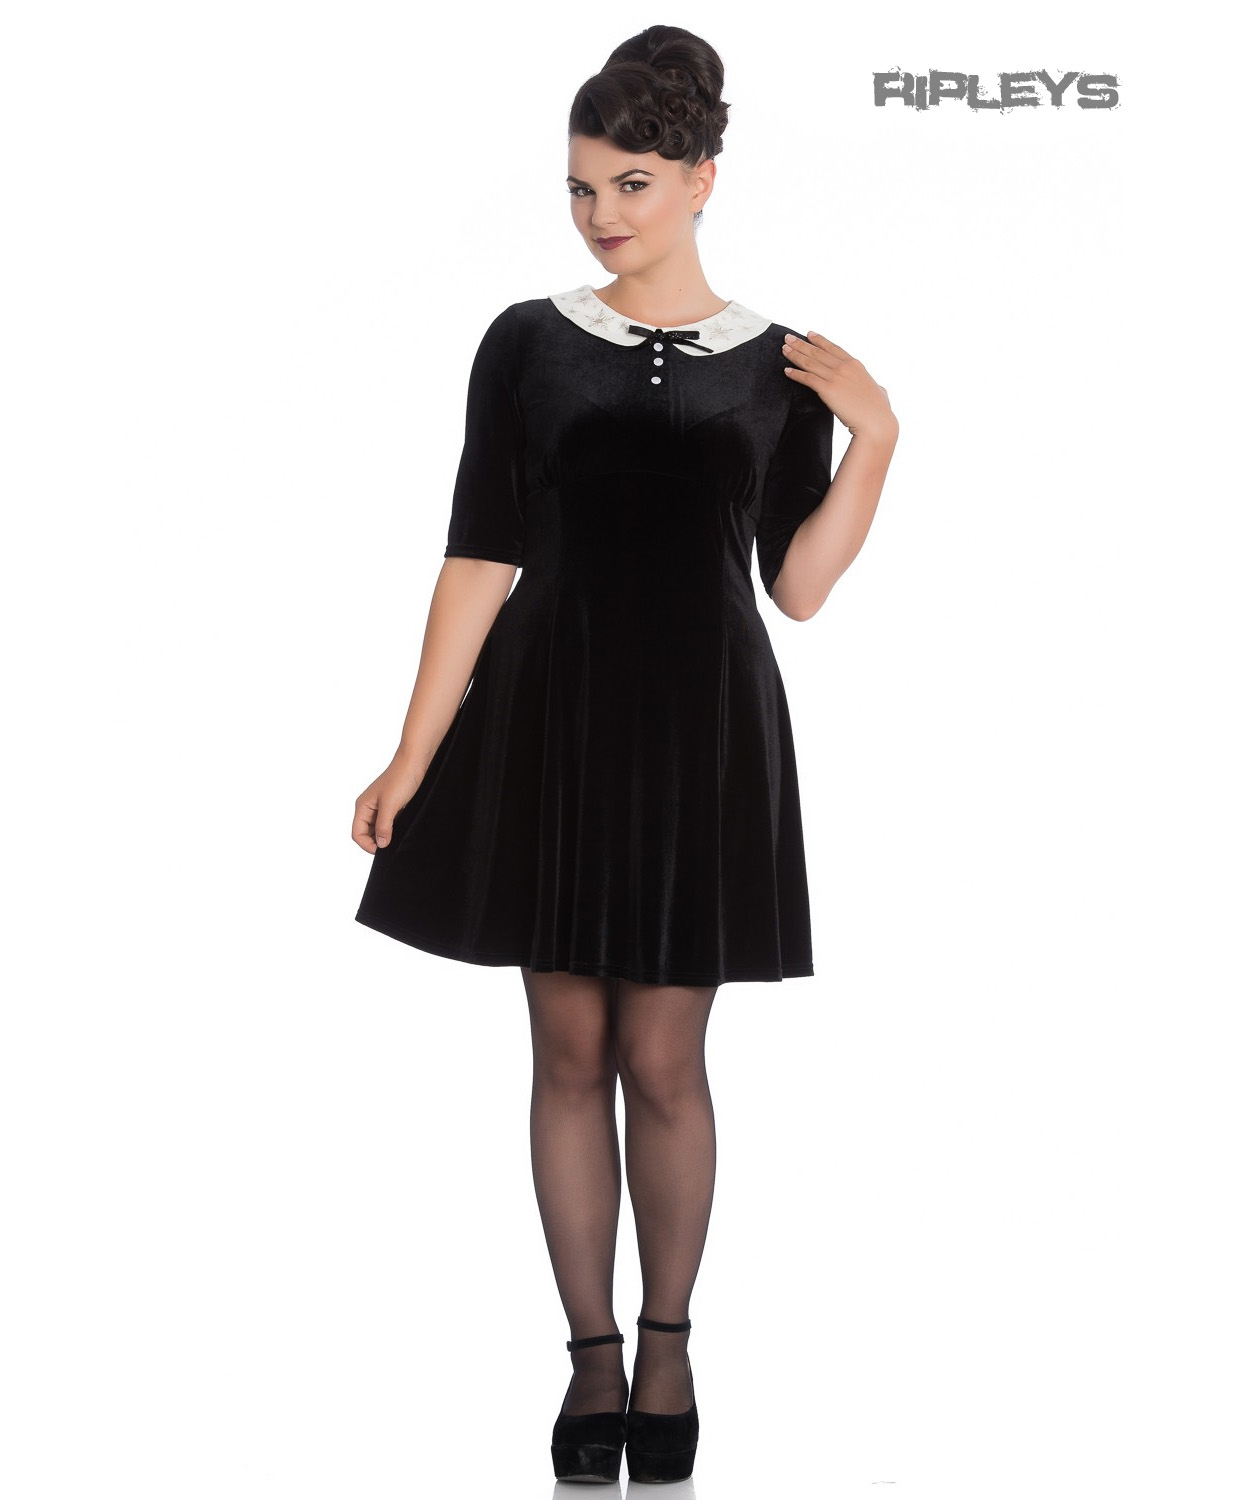 Hell-Bunny-Mini-Skater-Dress-Festive-Christmas-SNOWY-Black-Snowflakes-All-Sizes thumbnail 14